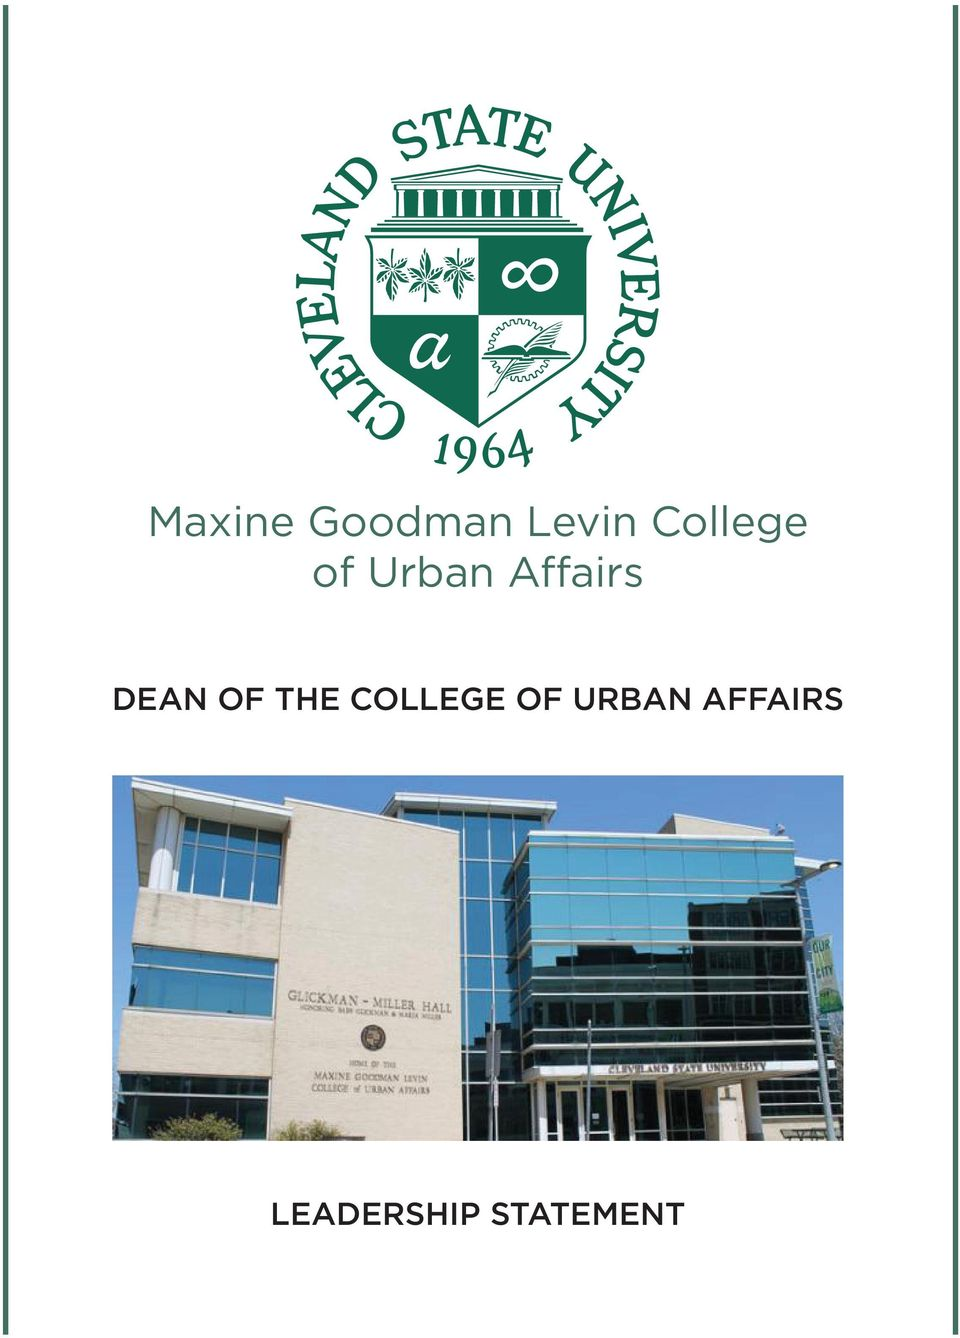 DEAN OF THE COLLEGE OF